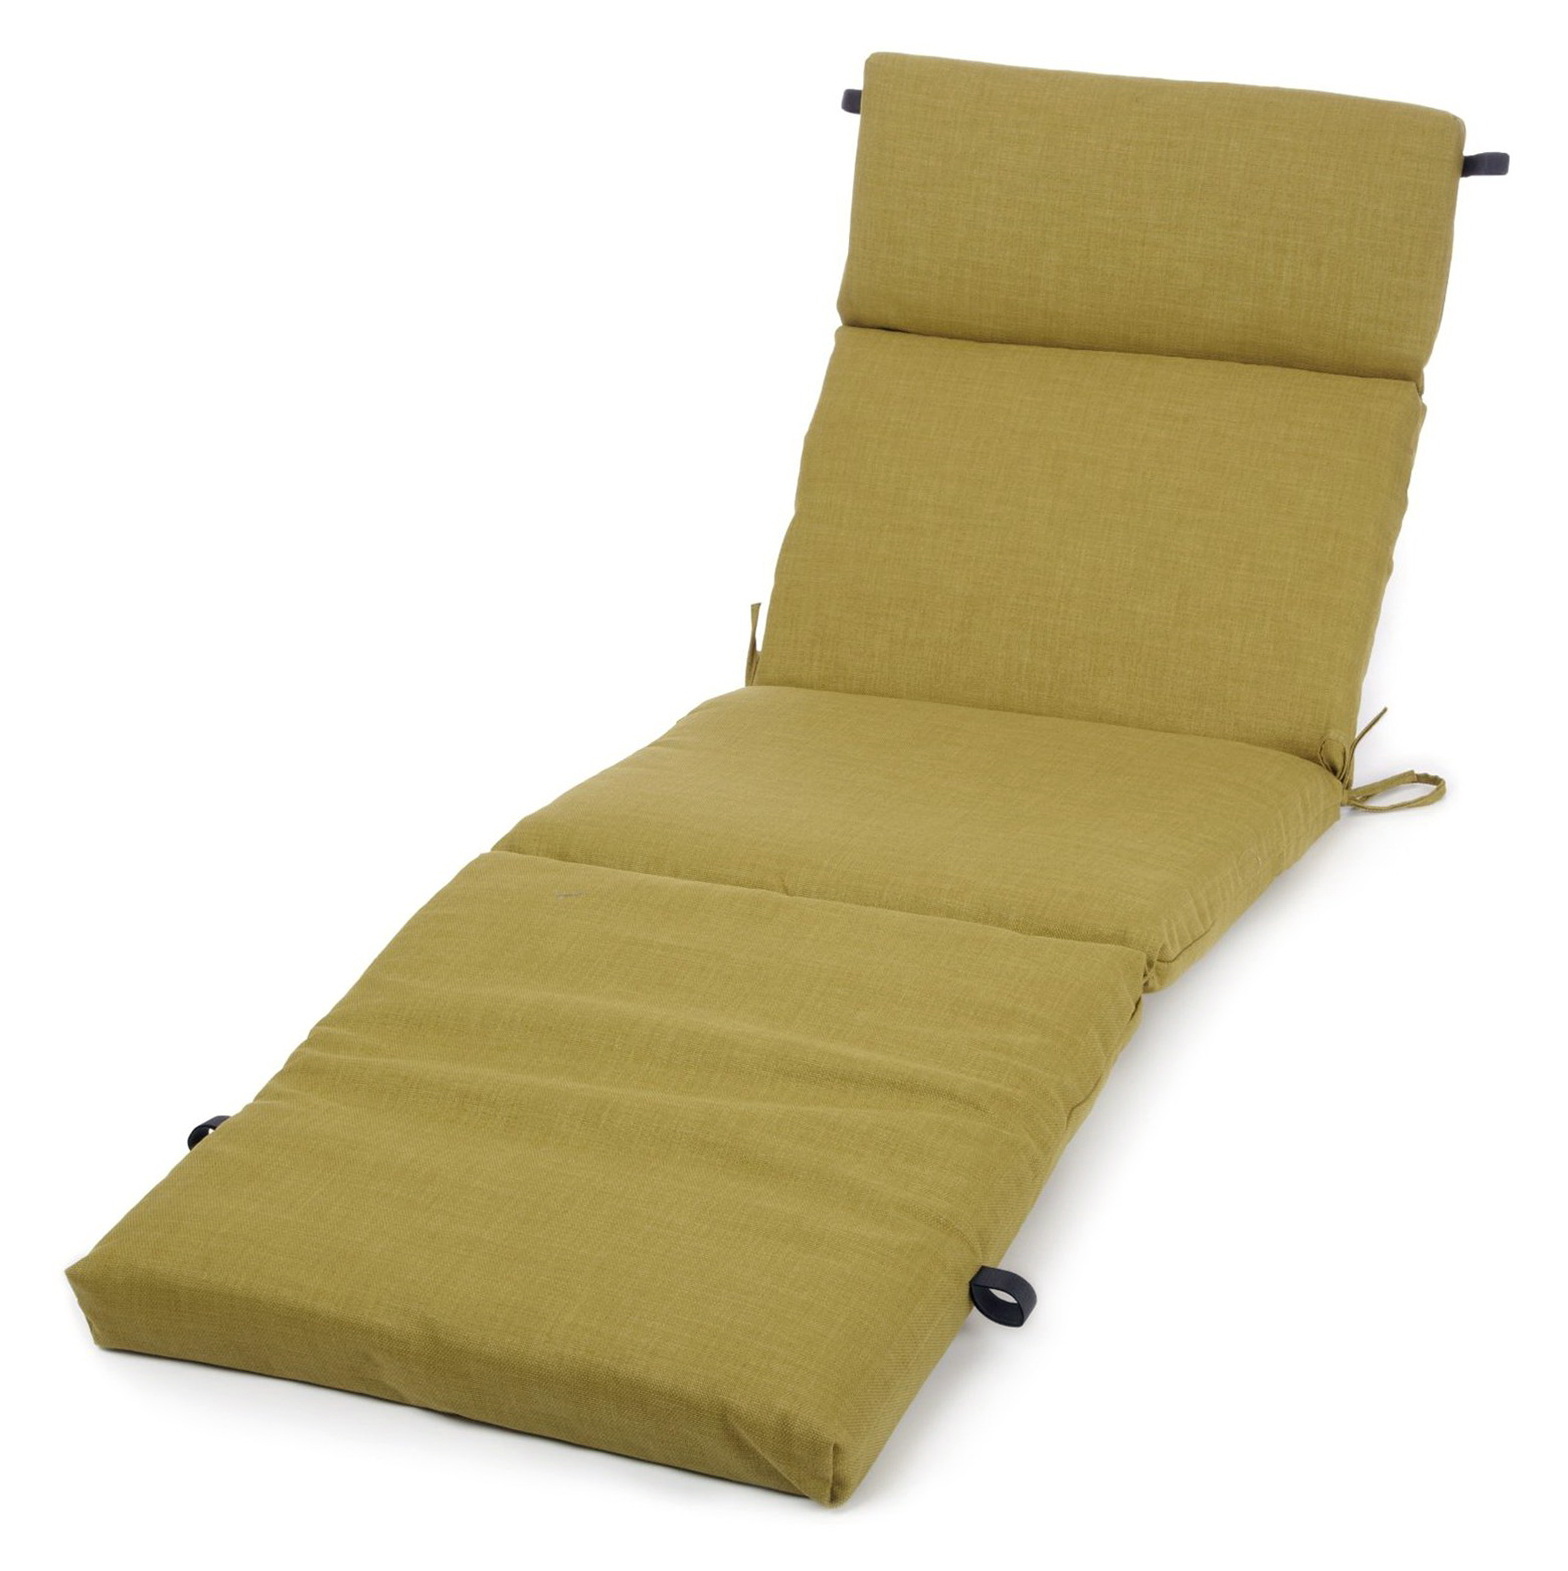 Outdoor Chaise Cushions Clearance Home Design Ideas